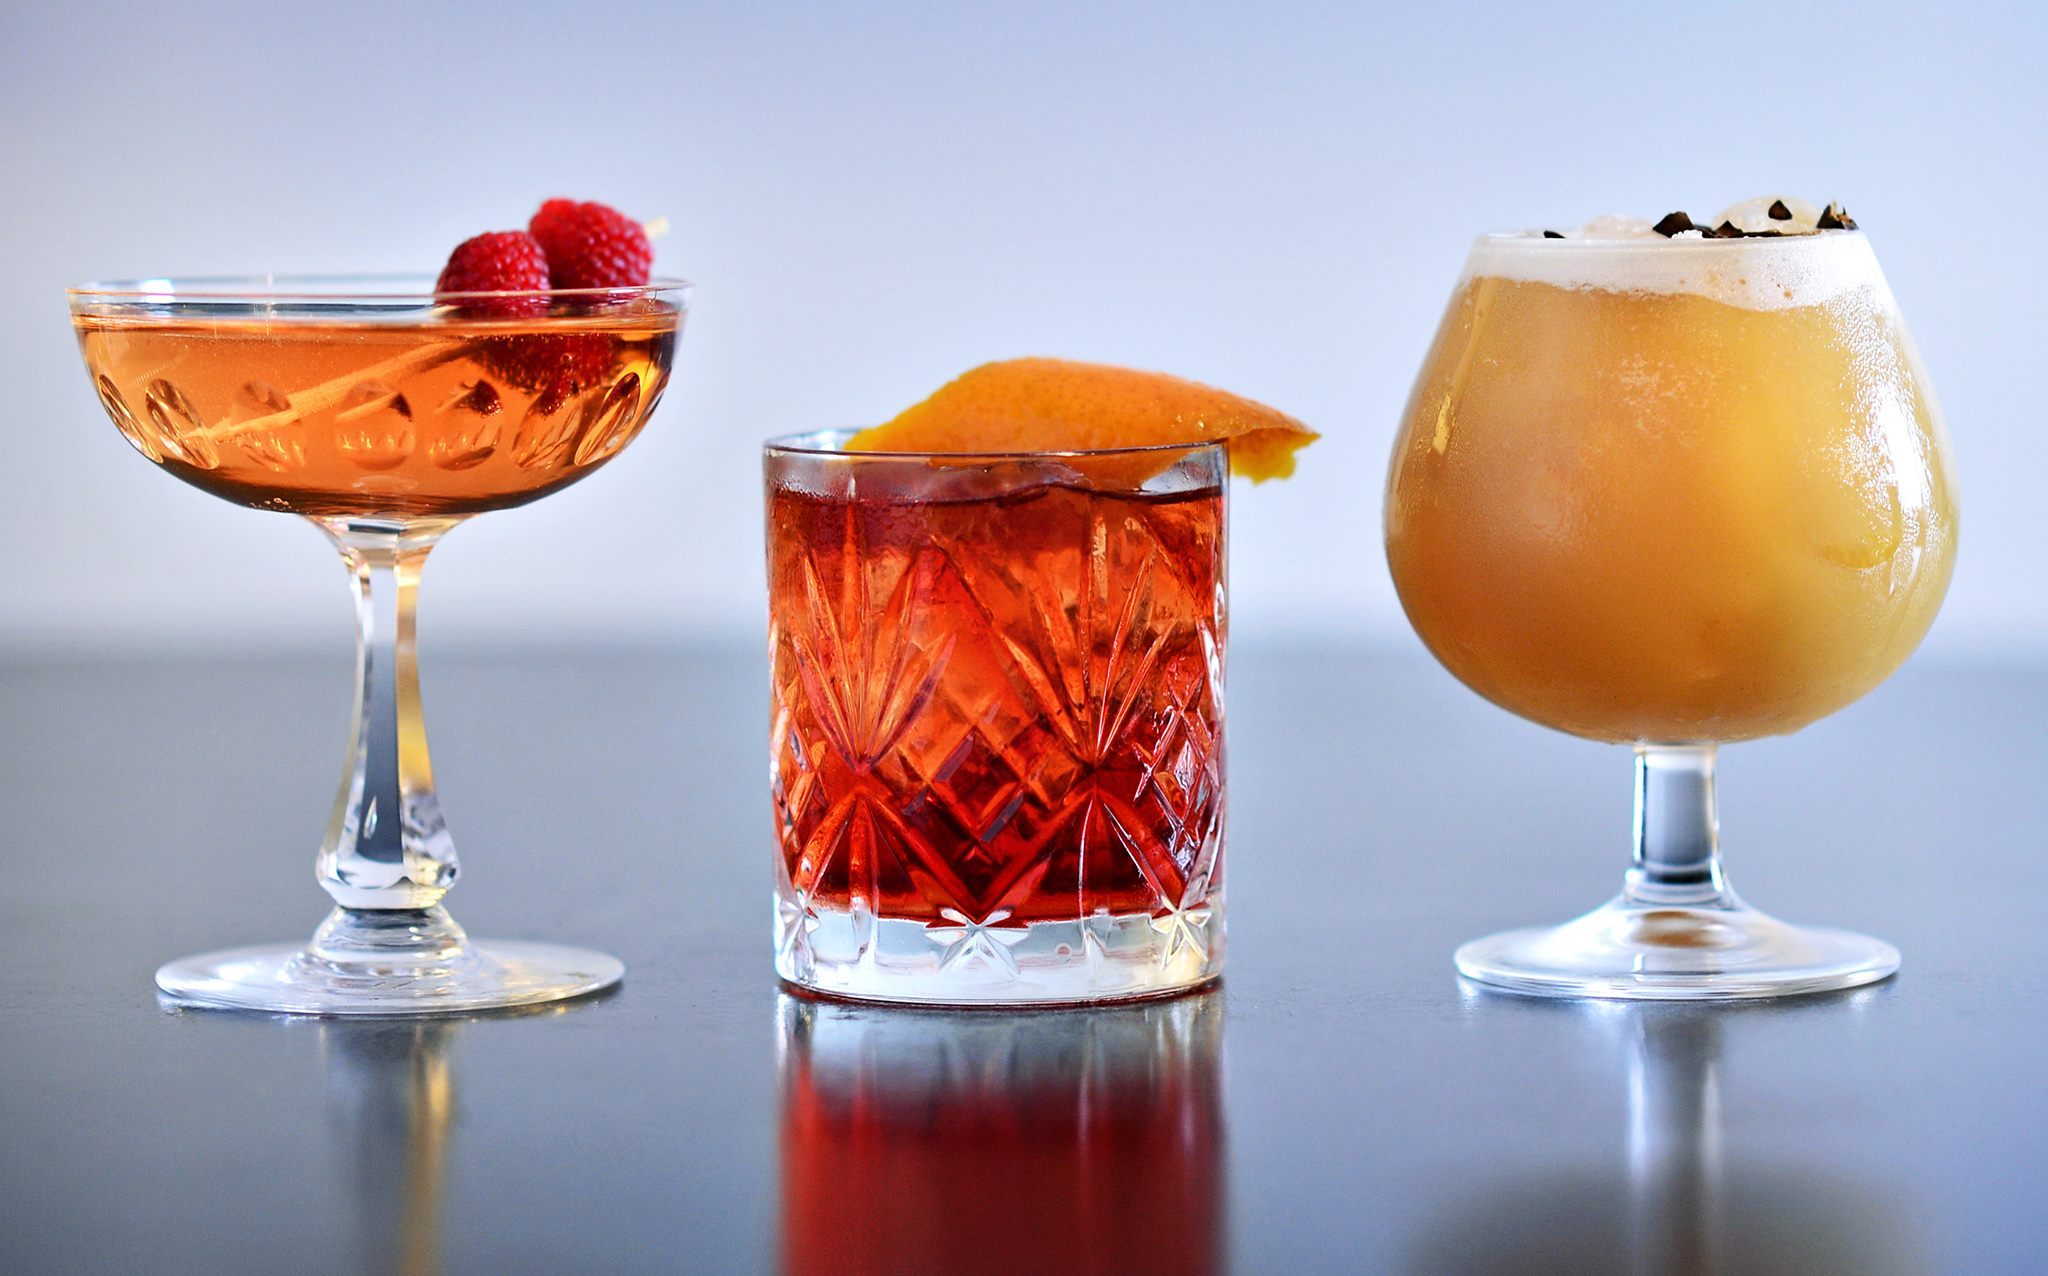 New Years cocktail menu by Cocktails of Copenhagen: Queen's Peach, Geranium Negroni & Mexican New Year's Resolution. Photo by Alexander Banck Petersen.